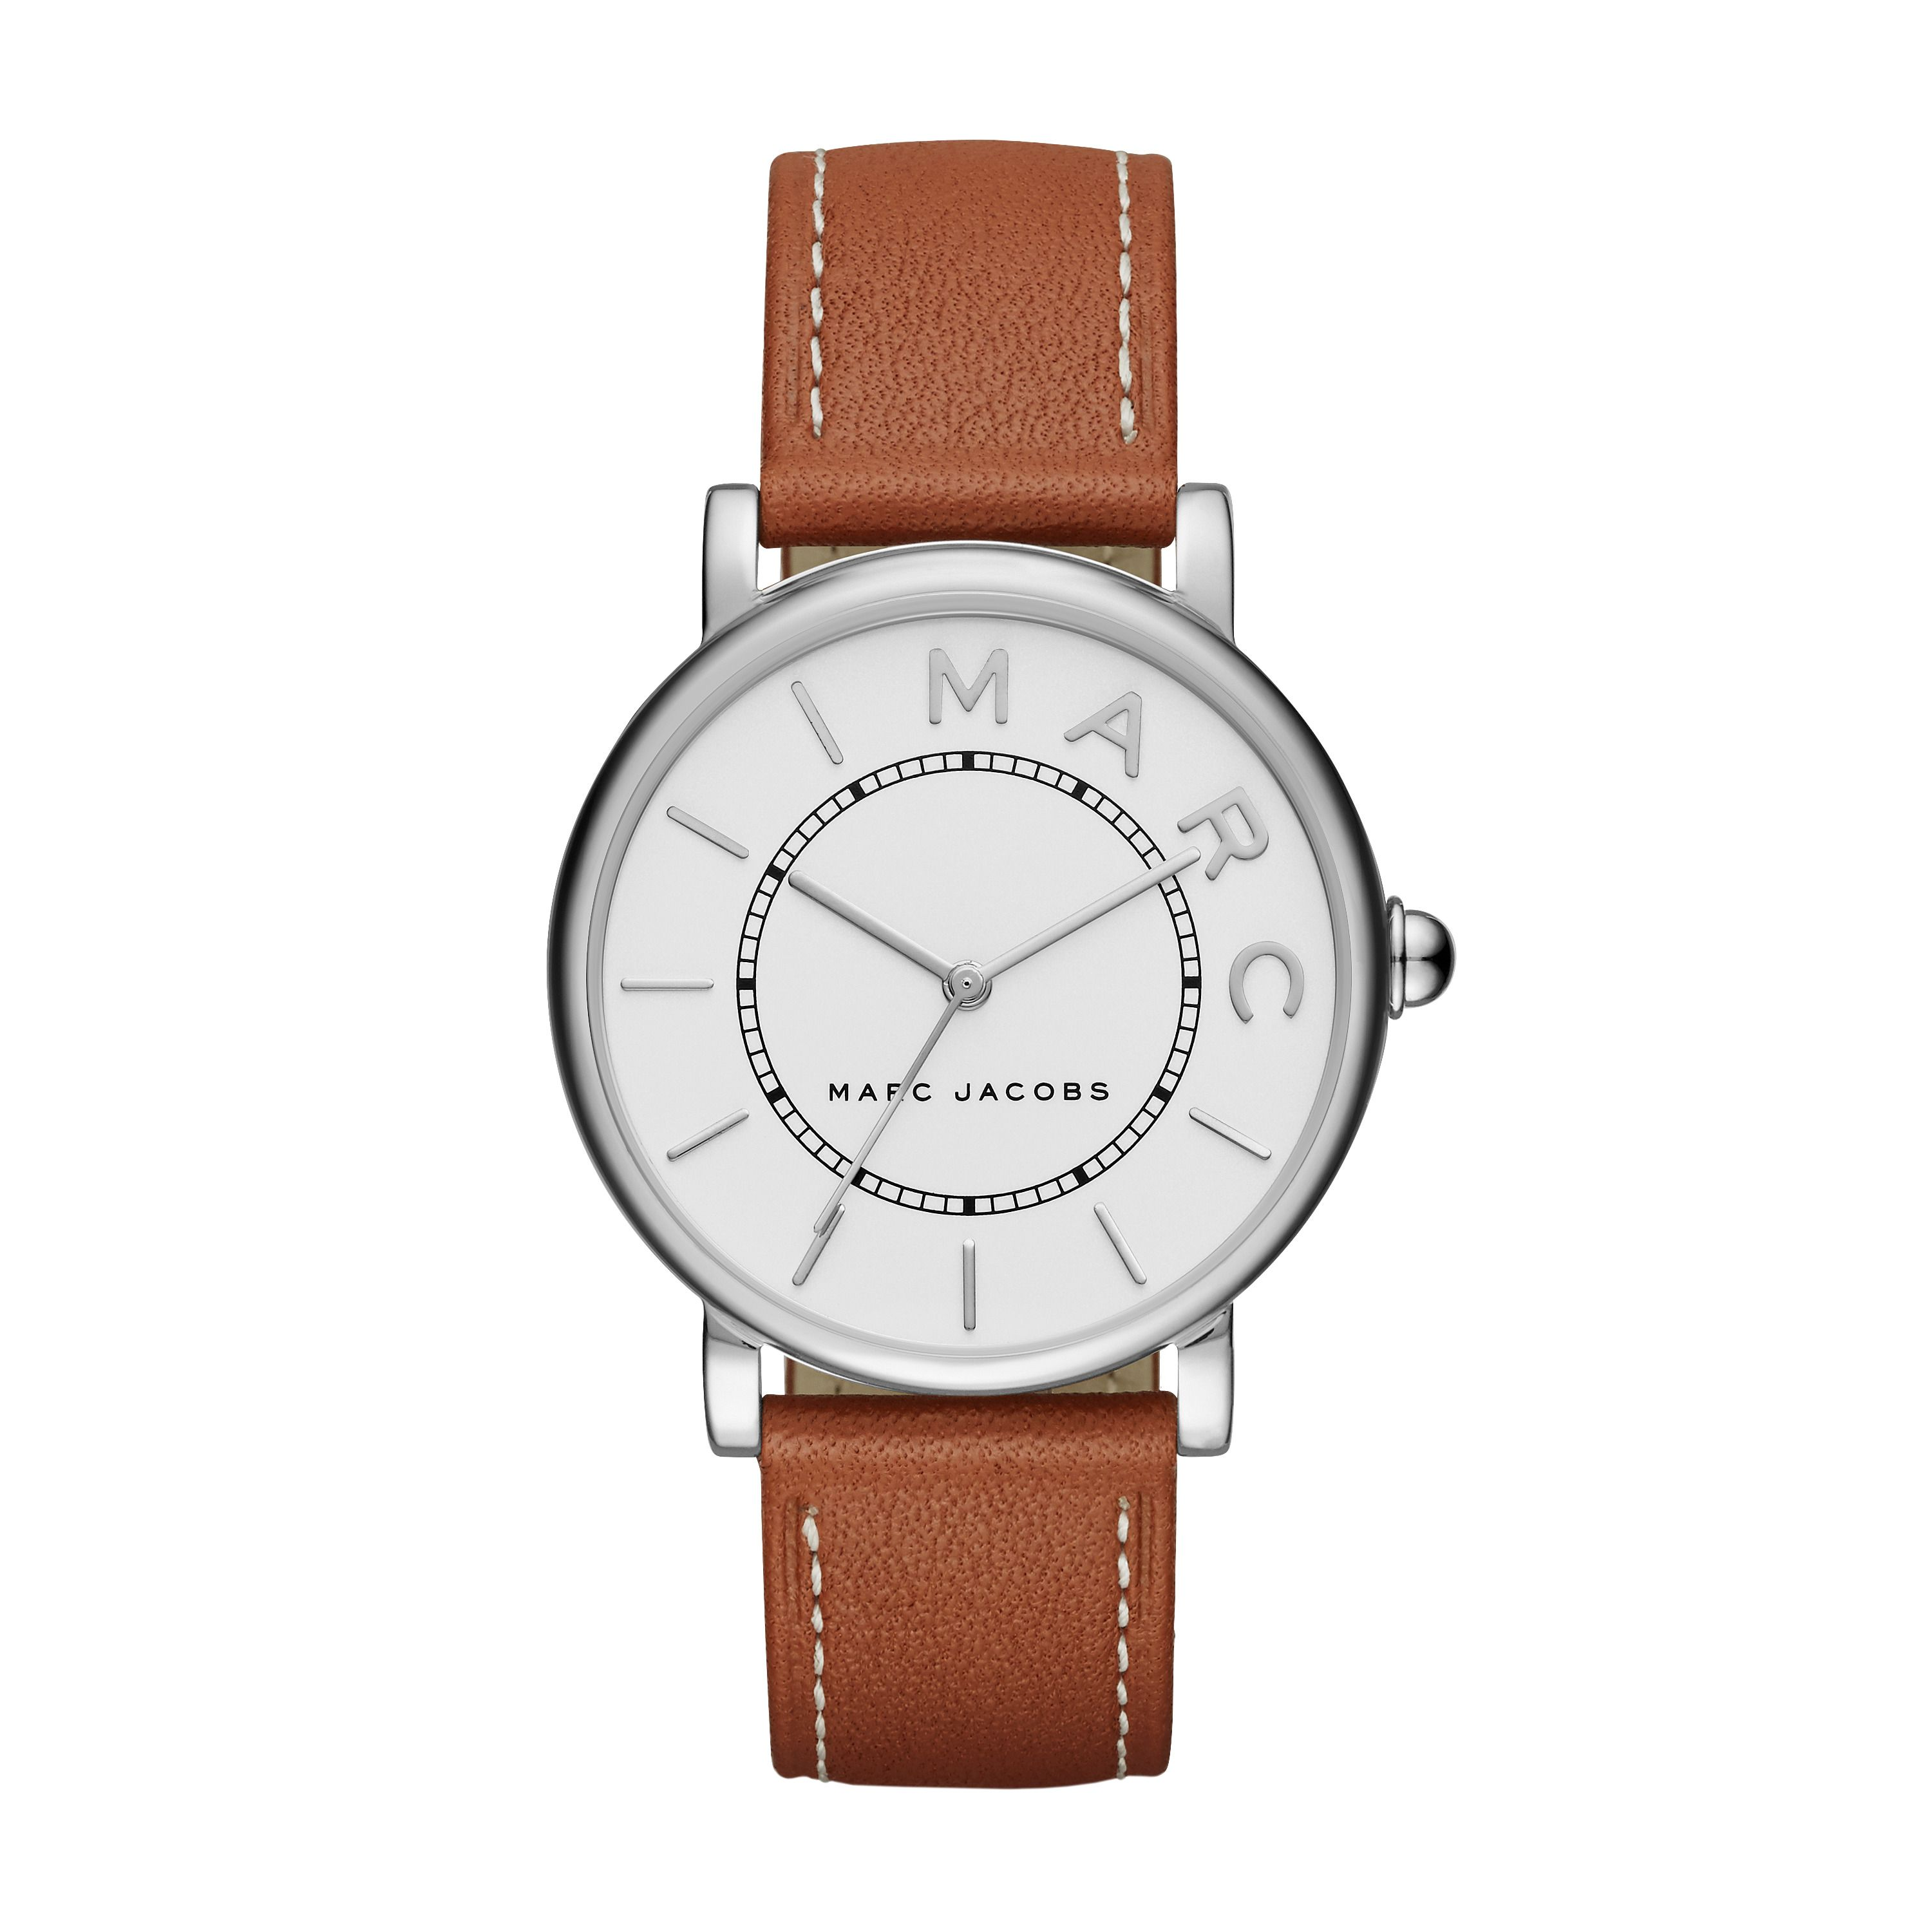 Marc Jacobs La s Watches Sale at House of Fraser